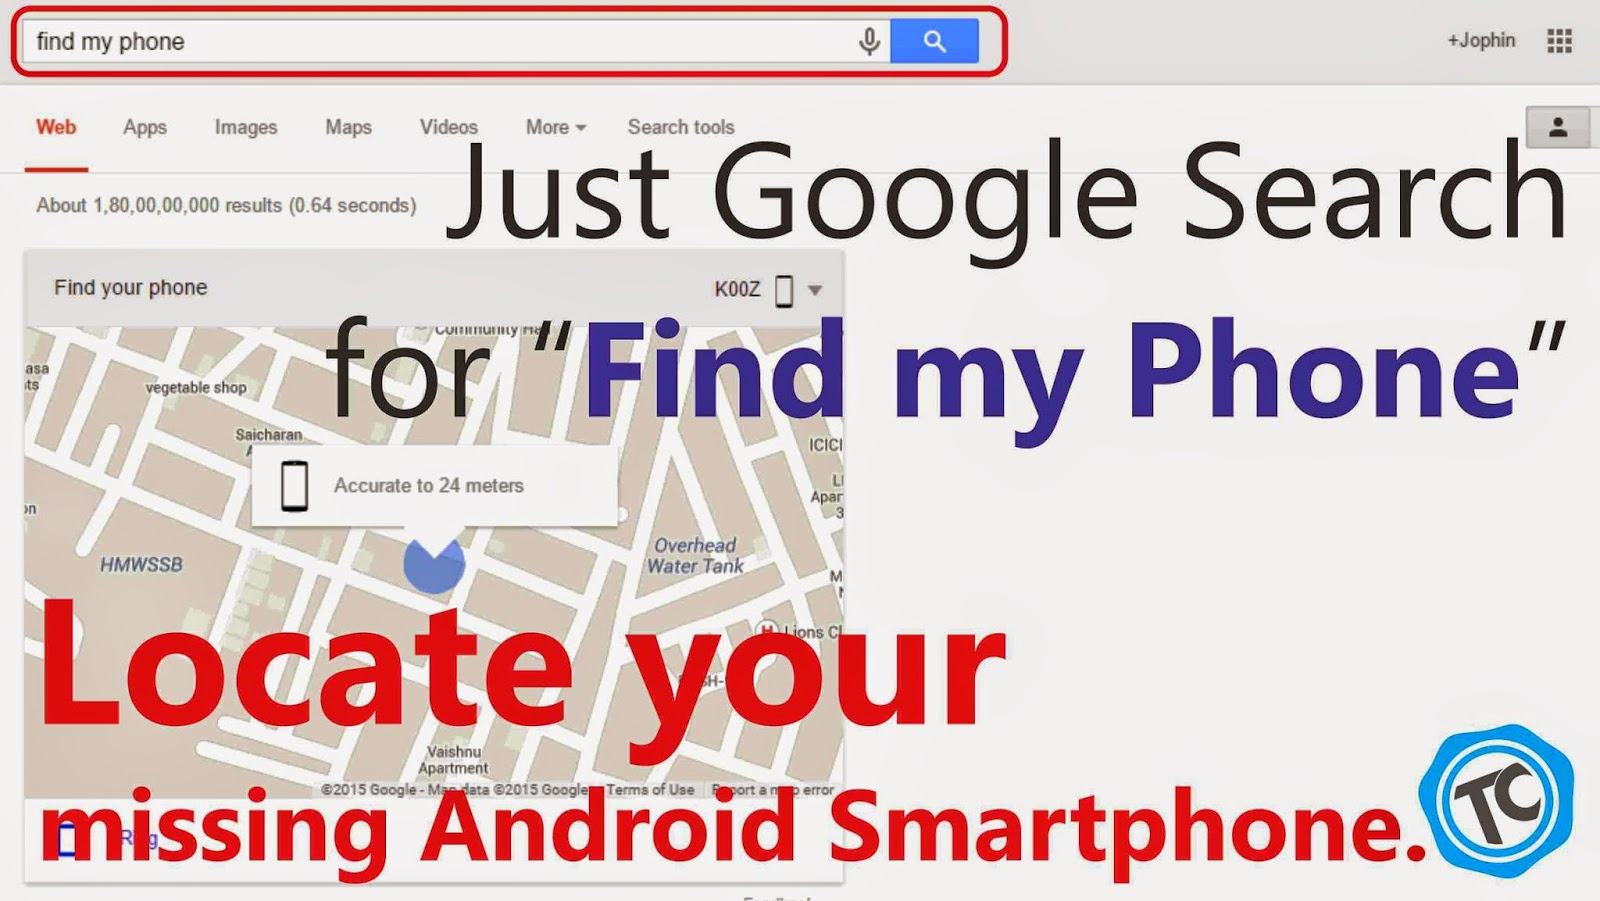 Now You can Literally Locate Your Android Phone by Searching for it on Google!